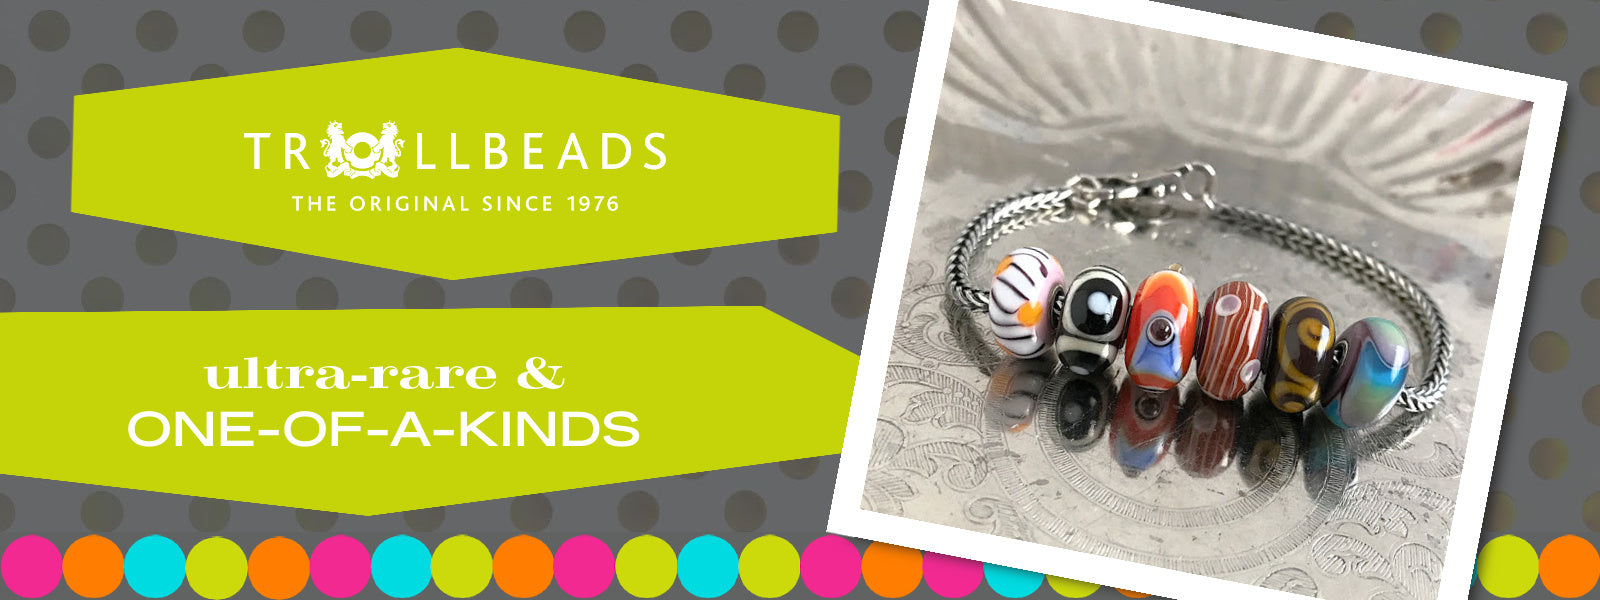 """Suzie Q Studio has stashed away rare and retired special glass, sterling silver and limited edition Trollbeads pieces in the Suzie Q Studio """"Trollbeads Treasure Vault"""". This Trollbeads Ultra-Rare & One-of-a-Kinds Collection features some rare beauties."""